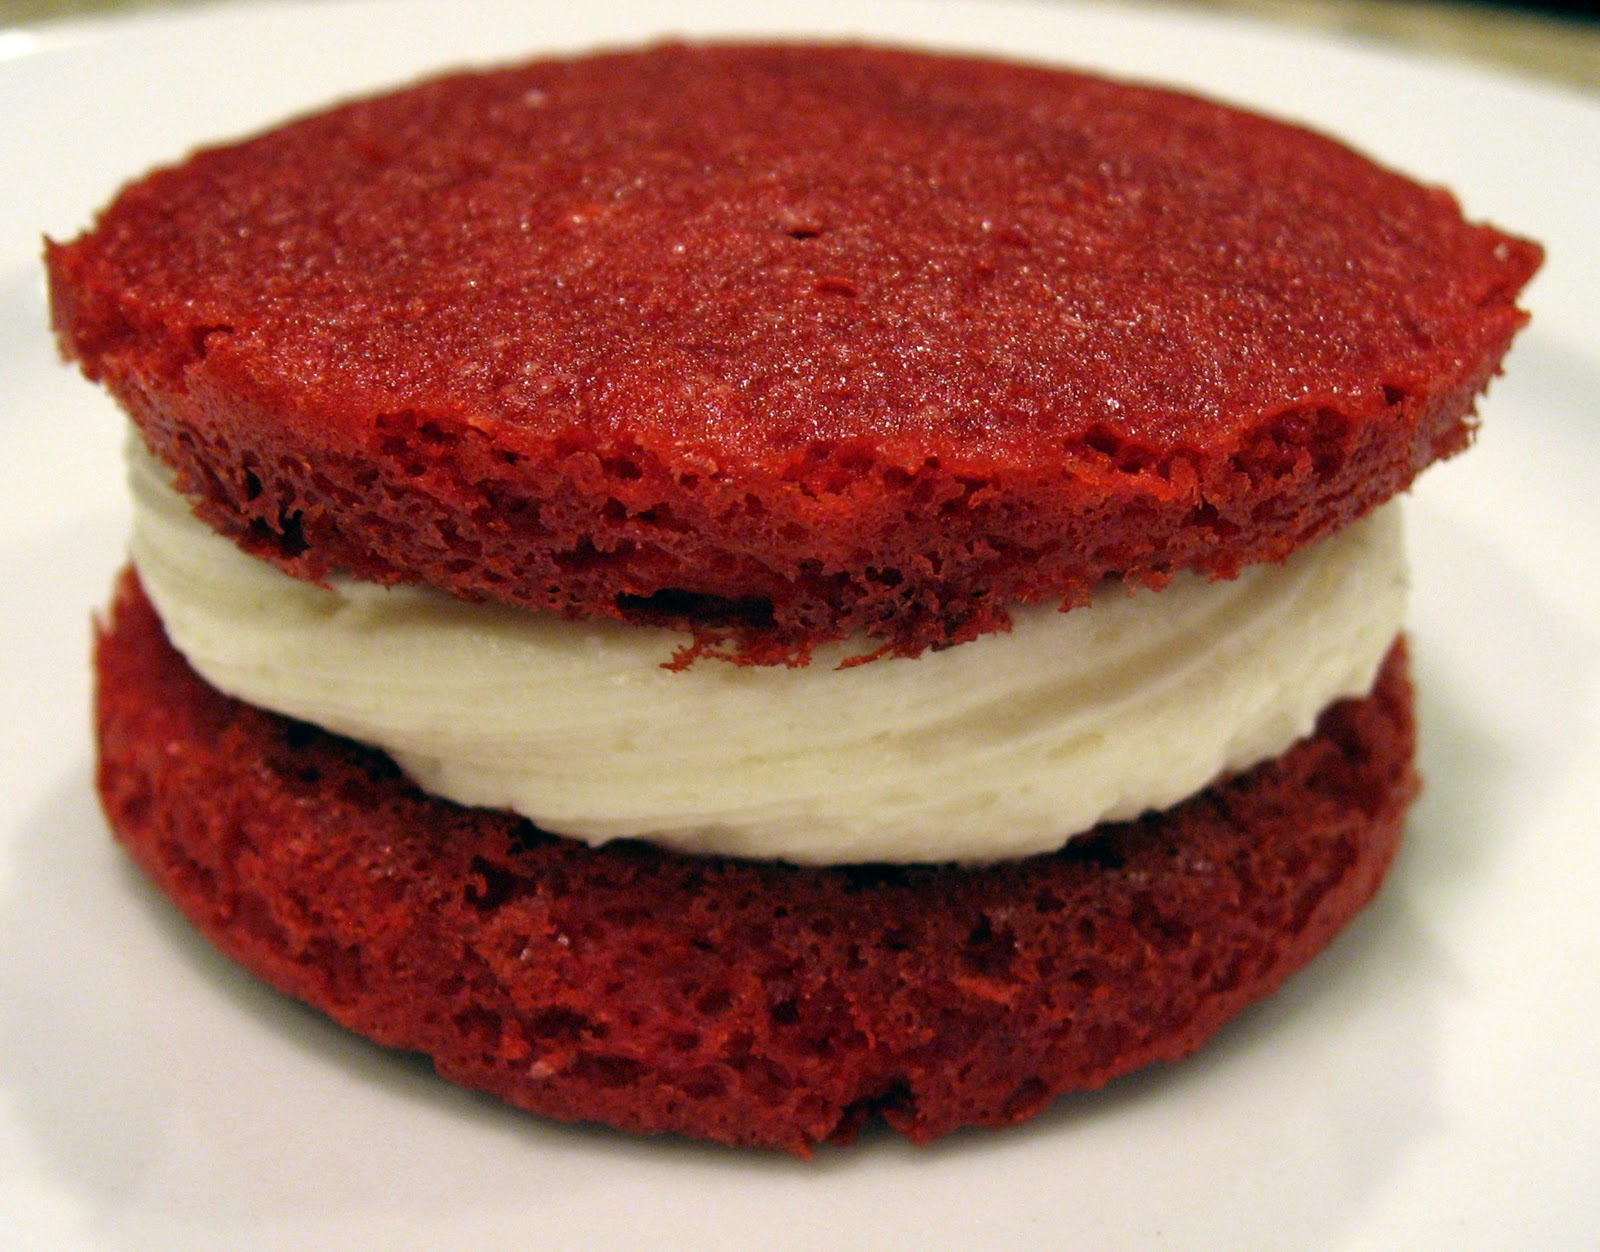 Dinner Delish: Red Velvet Whoopie Pies